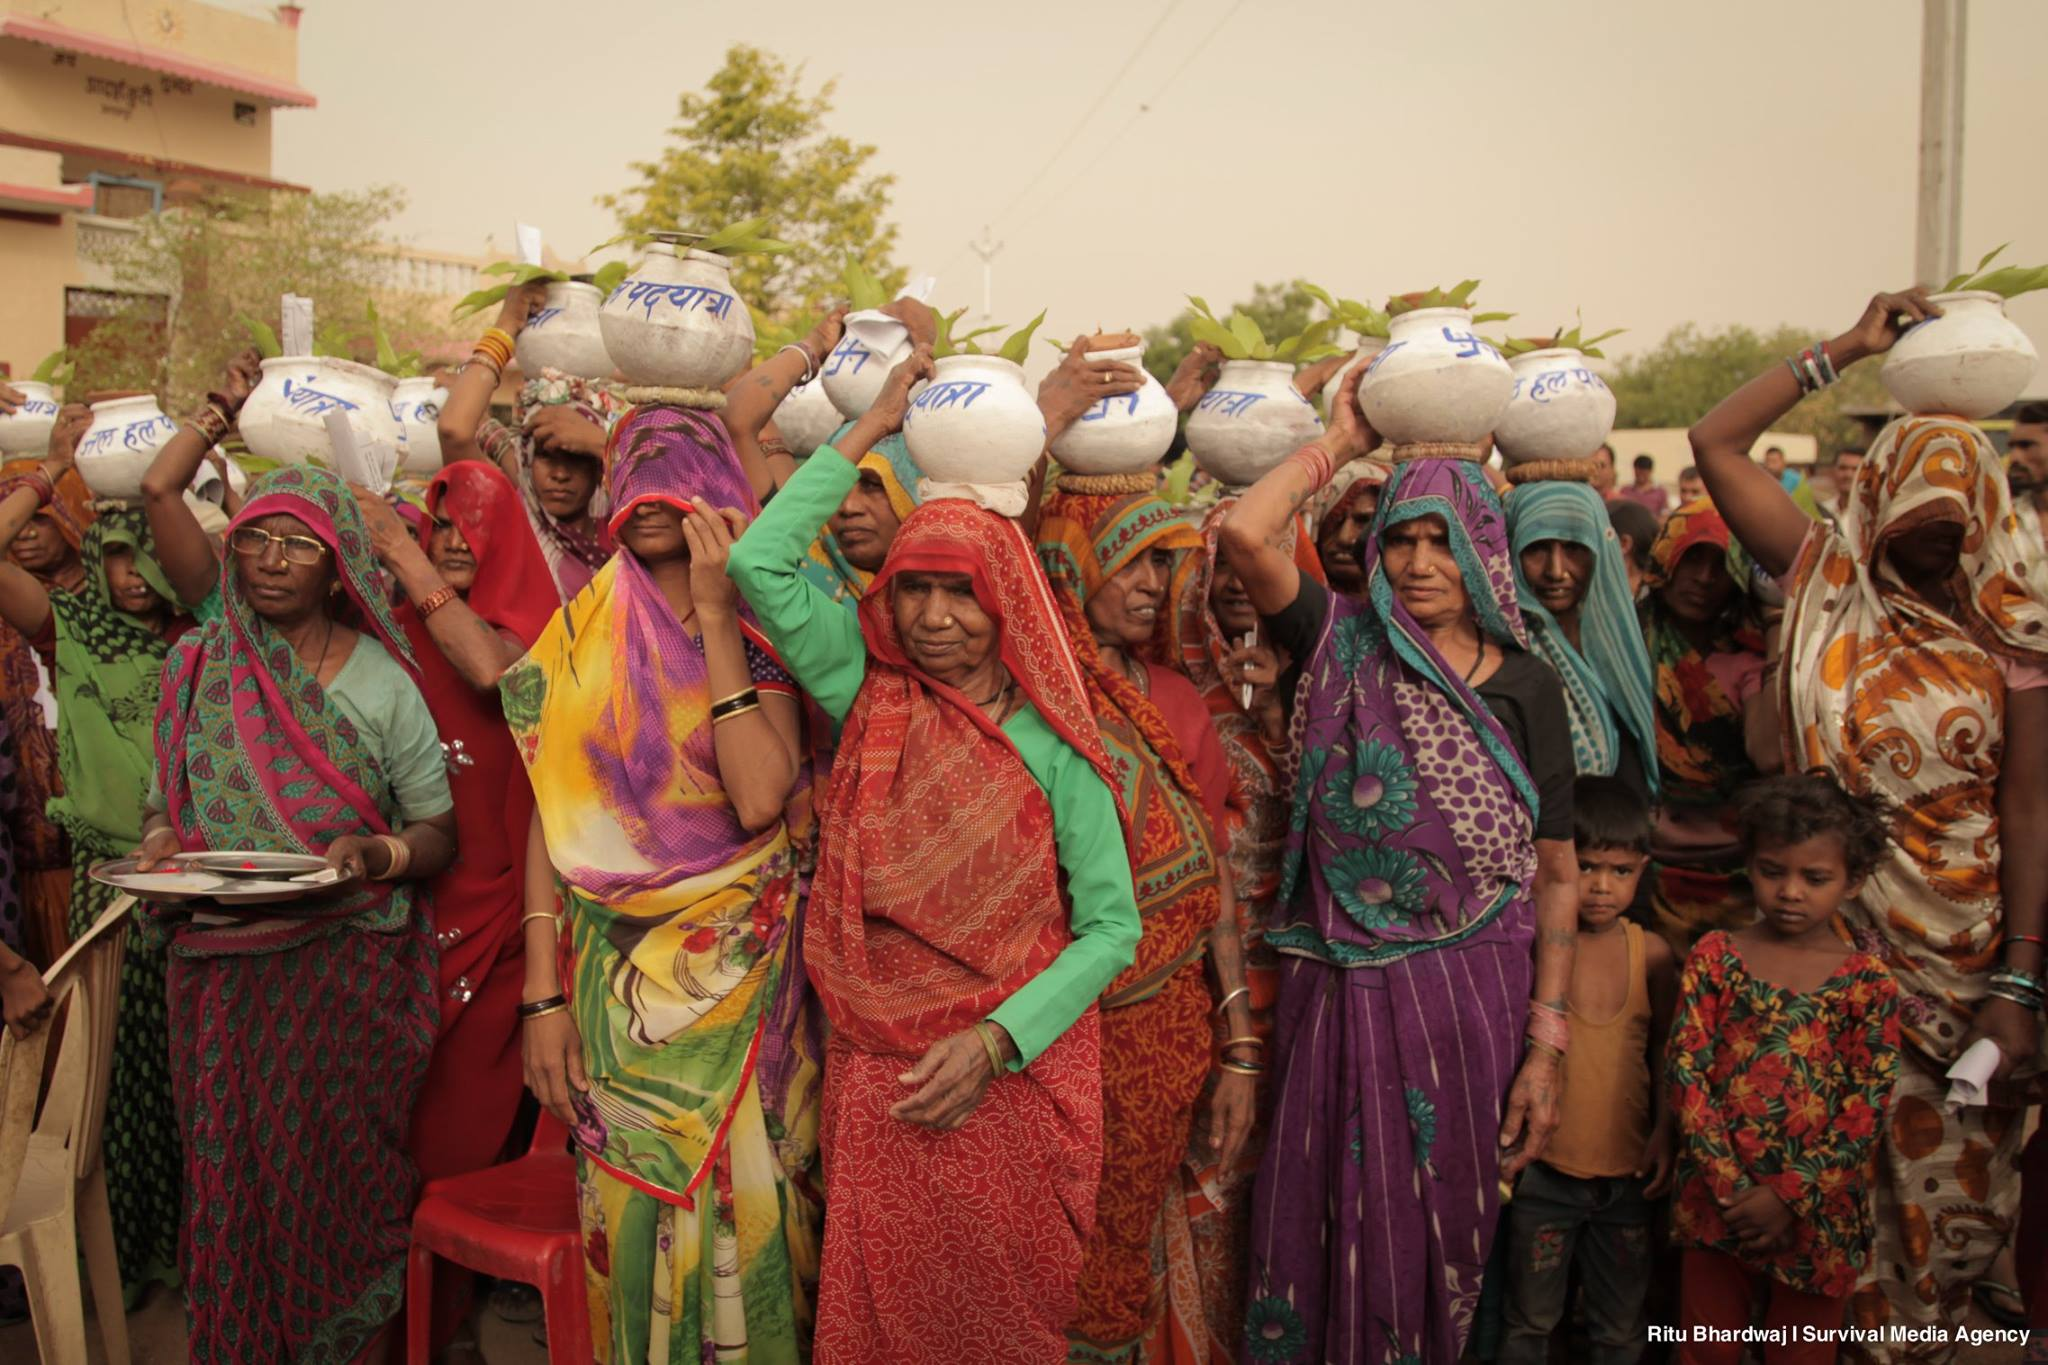 Women from Alampura, Madhya Pradesh get ready to embark on a farmer's foot march. Recurrent drought in the last two years has crippled villages in 11 states both socially and economically. However, people all along the affected areas are pushing for sustainable solutions. People in hundreds marched for 200 kms from Marathwada to Bundelkhand to take a stand against the lack of action by the government in securing the livelihood of almost 540 million people affected by the silent disaster.